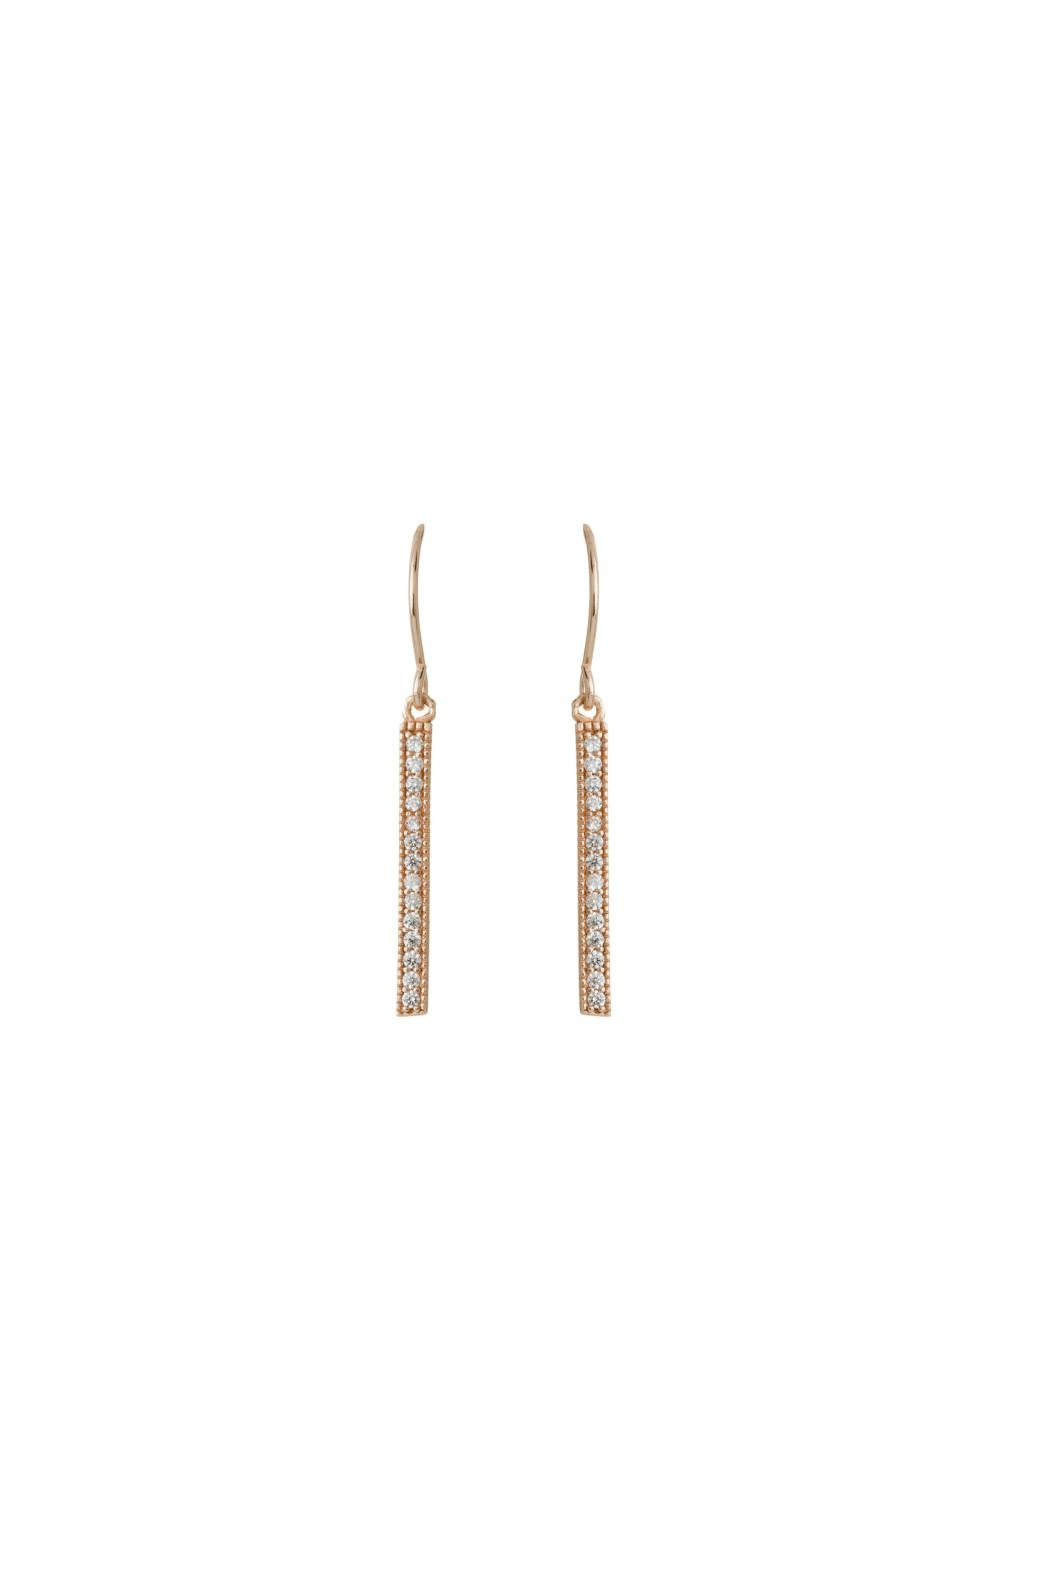 Gemma Collection Pave Bar Earrings - Main Image